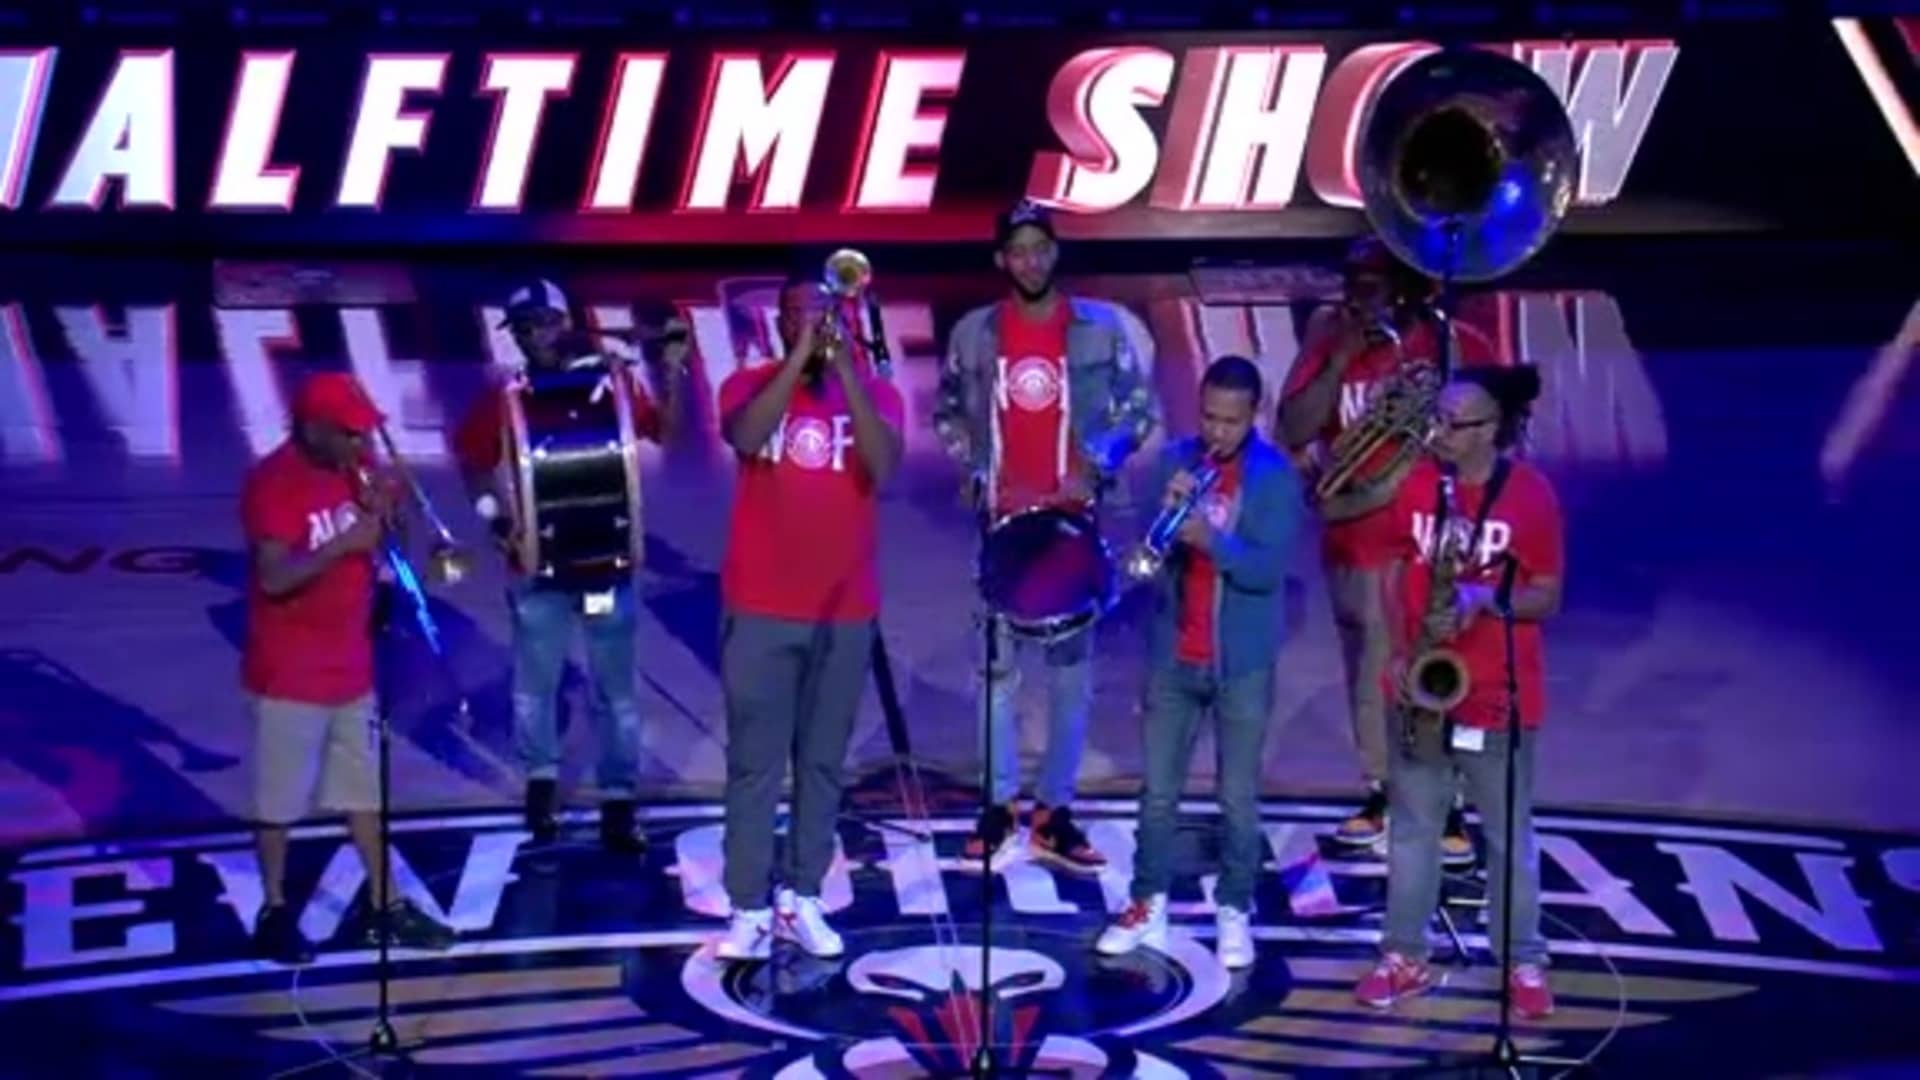 Pelicans Halftime: Rebirth Brass Band - December 29, 2019 vs. Houston Rockets